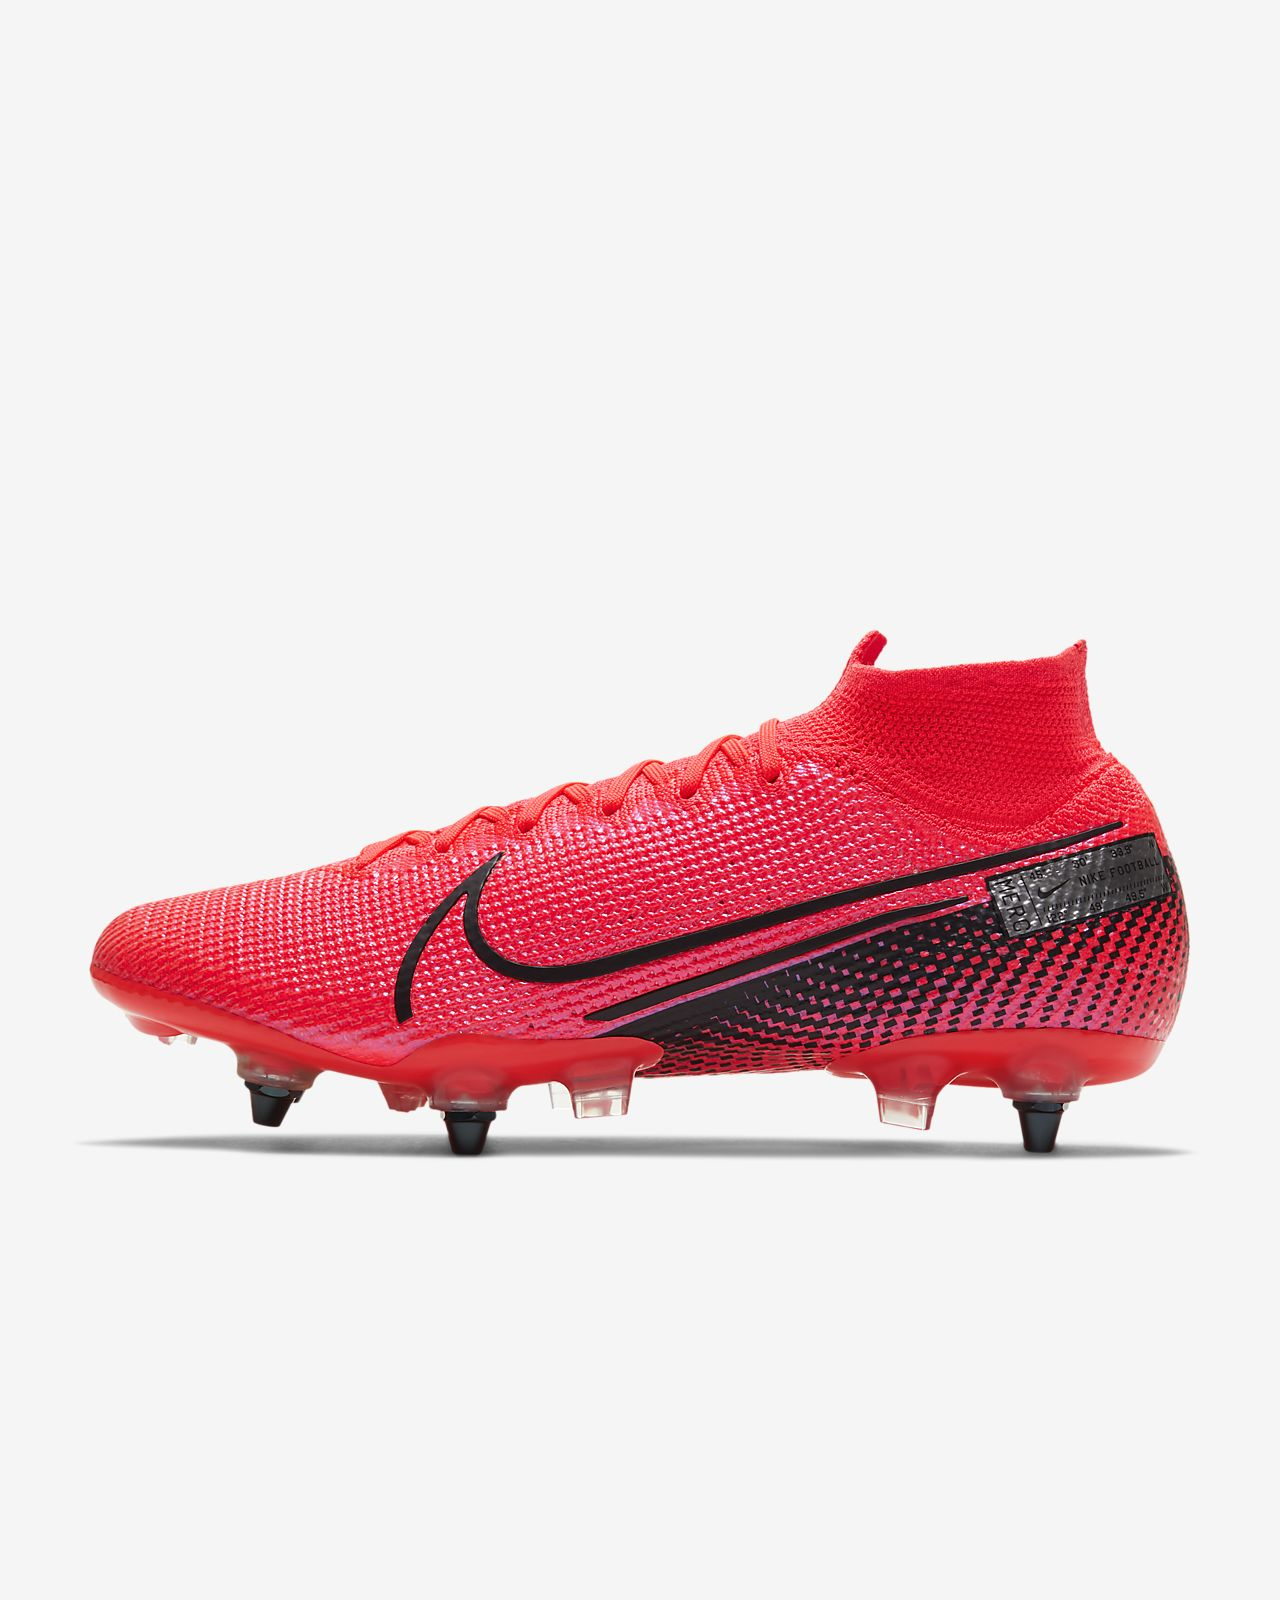 Nike Mercurial Superfly 7 Elite SG-PRO Anti-Clog Traction Soft-Ground Football Boot